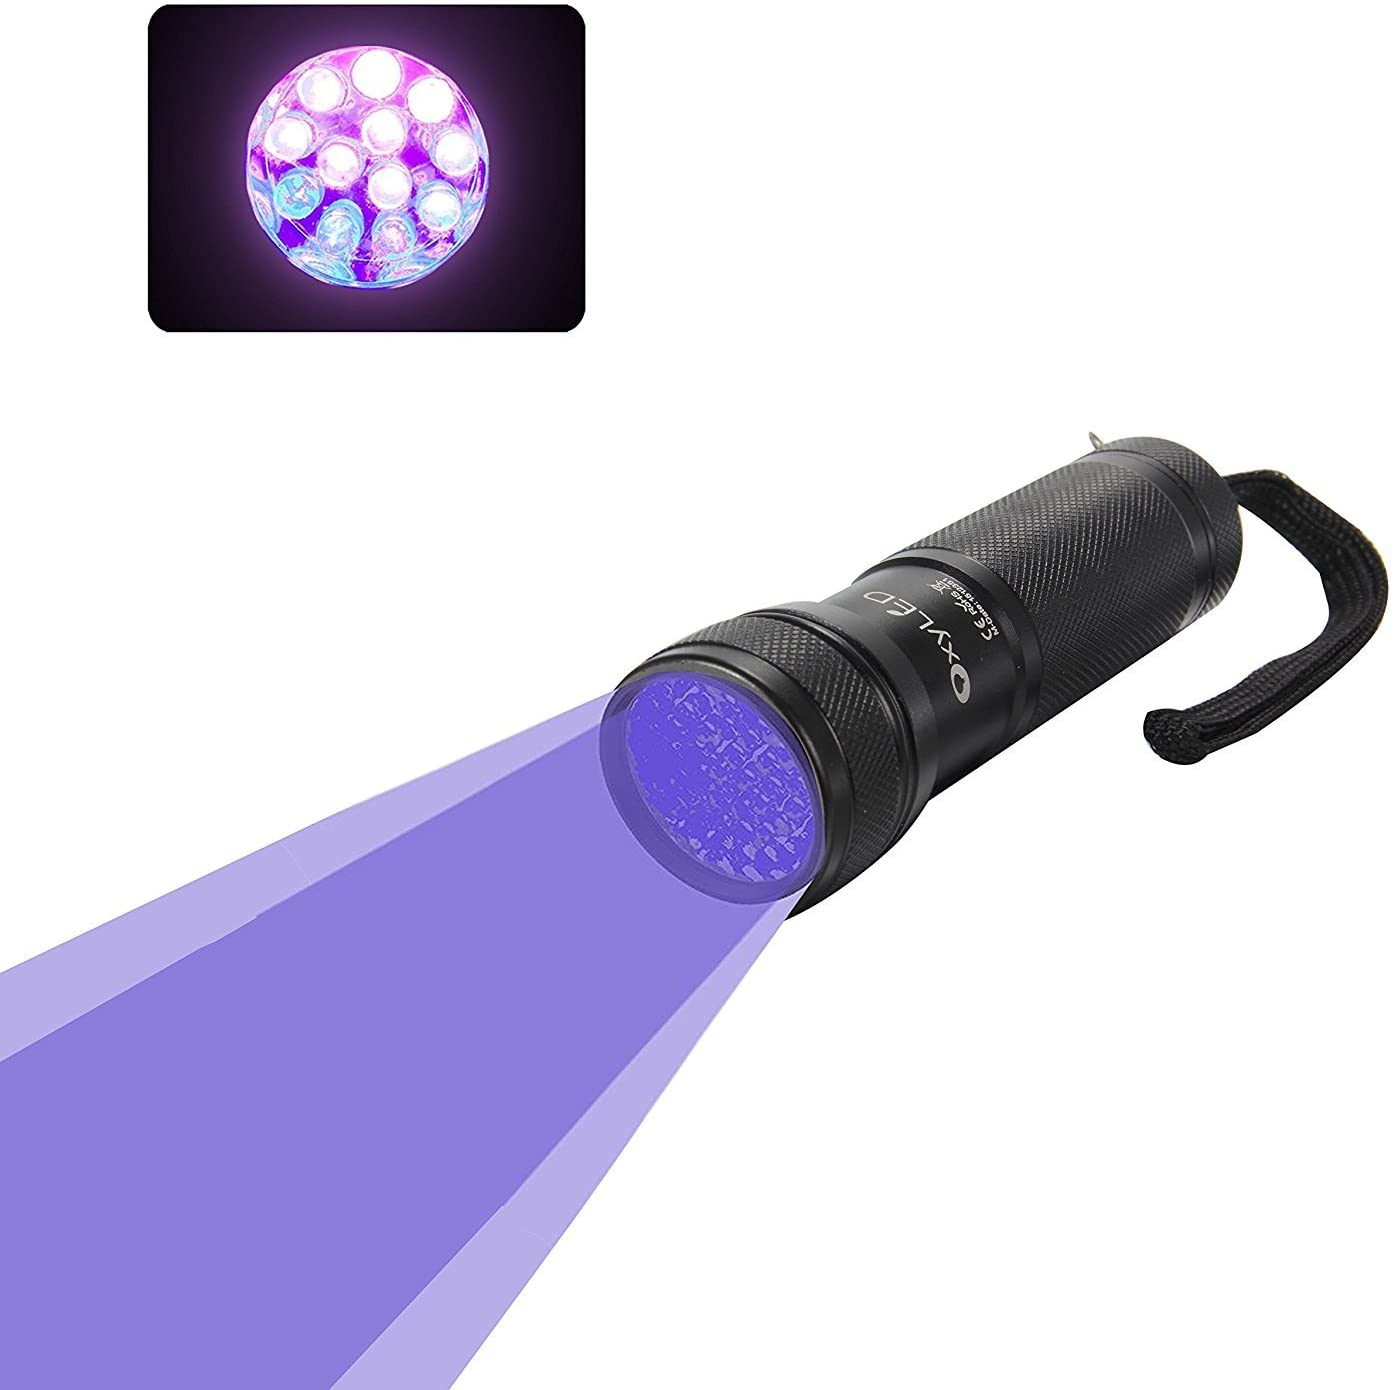 OxyLED OxyWild 12 Ultraviolet LED UV Light, Pet Urine Stain Detector Blacklight Flashlight (AAA Batteries Inclued)